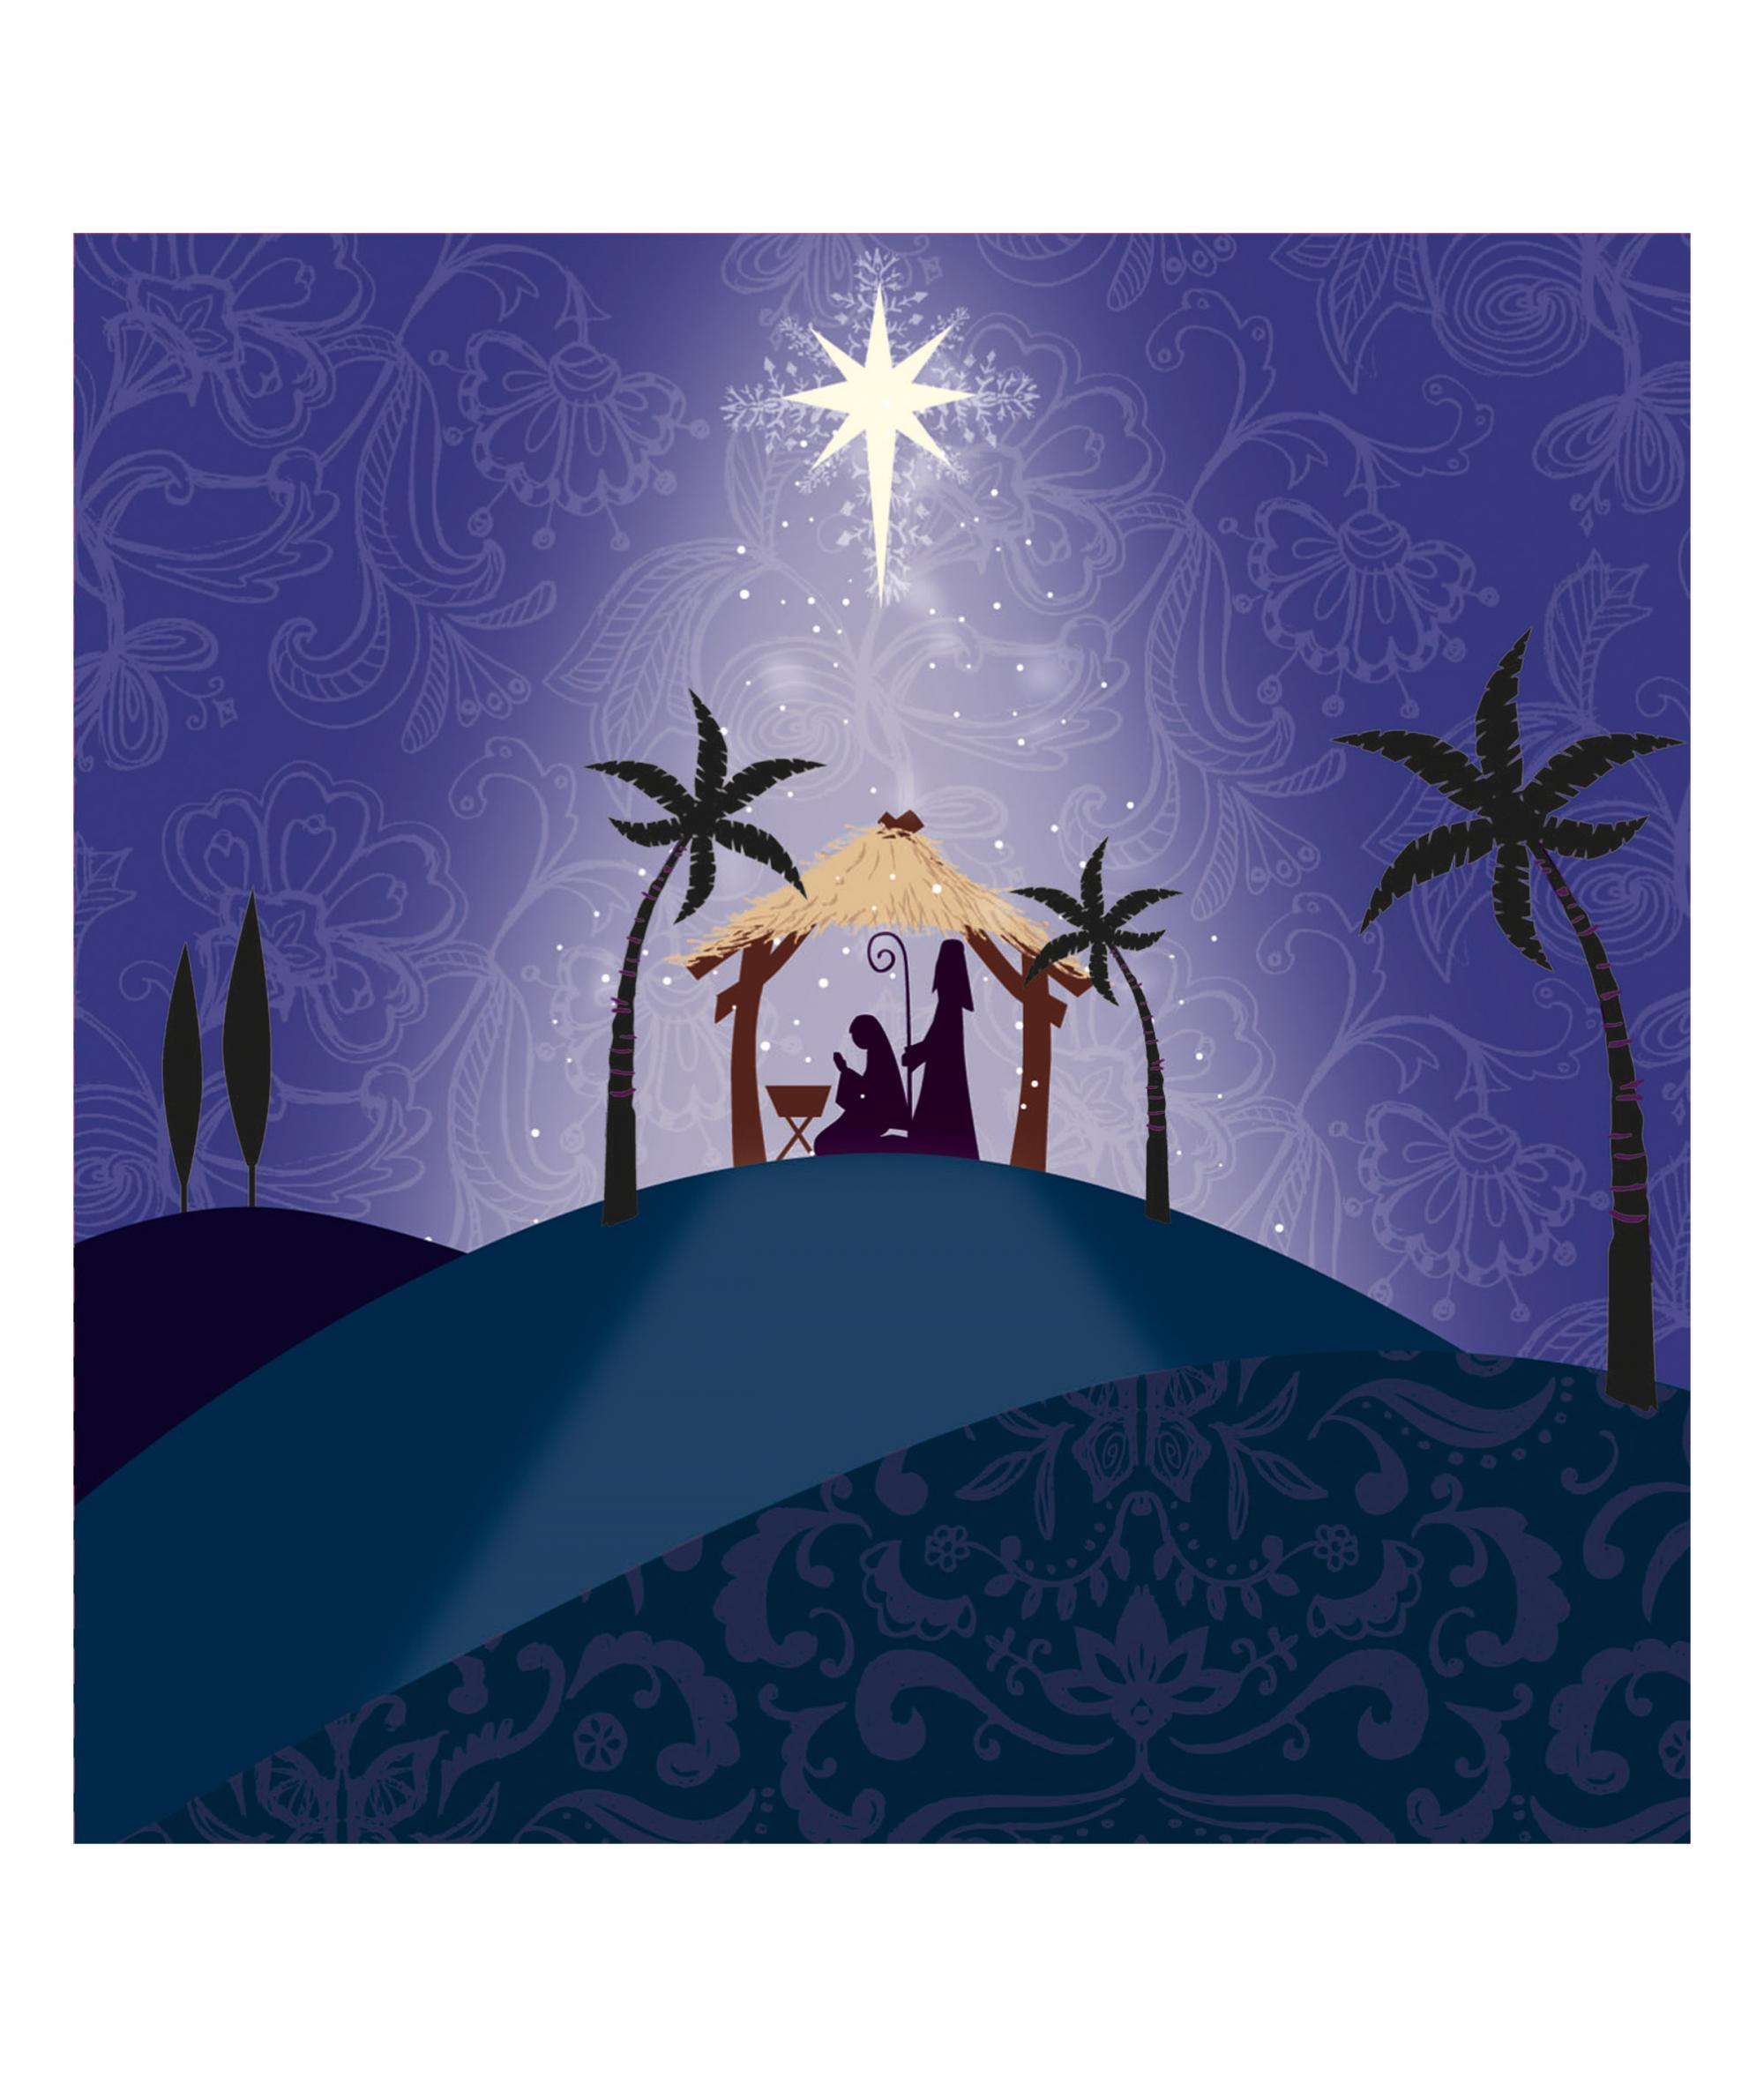 Hill Top Nativity Christmas Card - Pack of 10 | Cancer Research UK ...